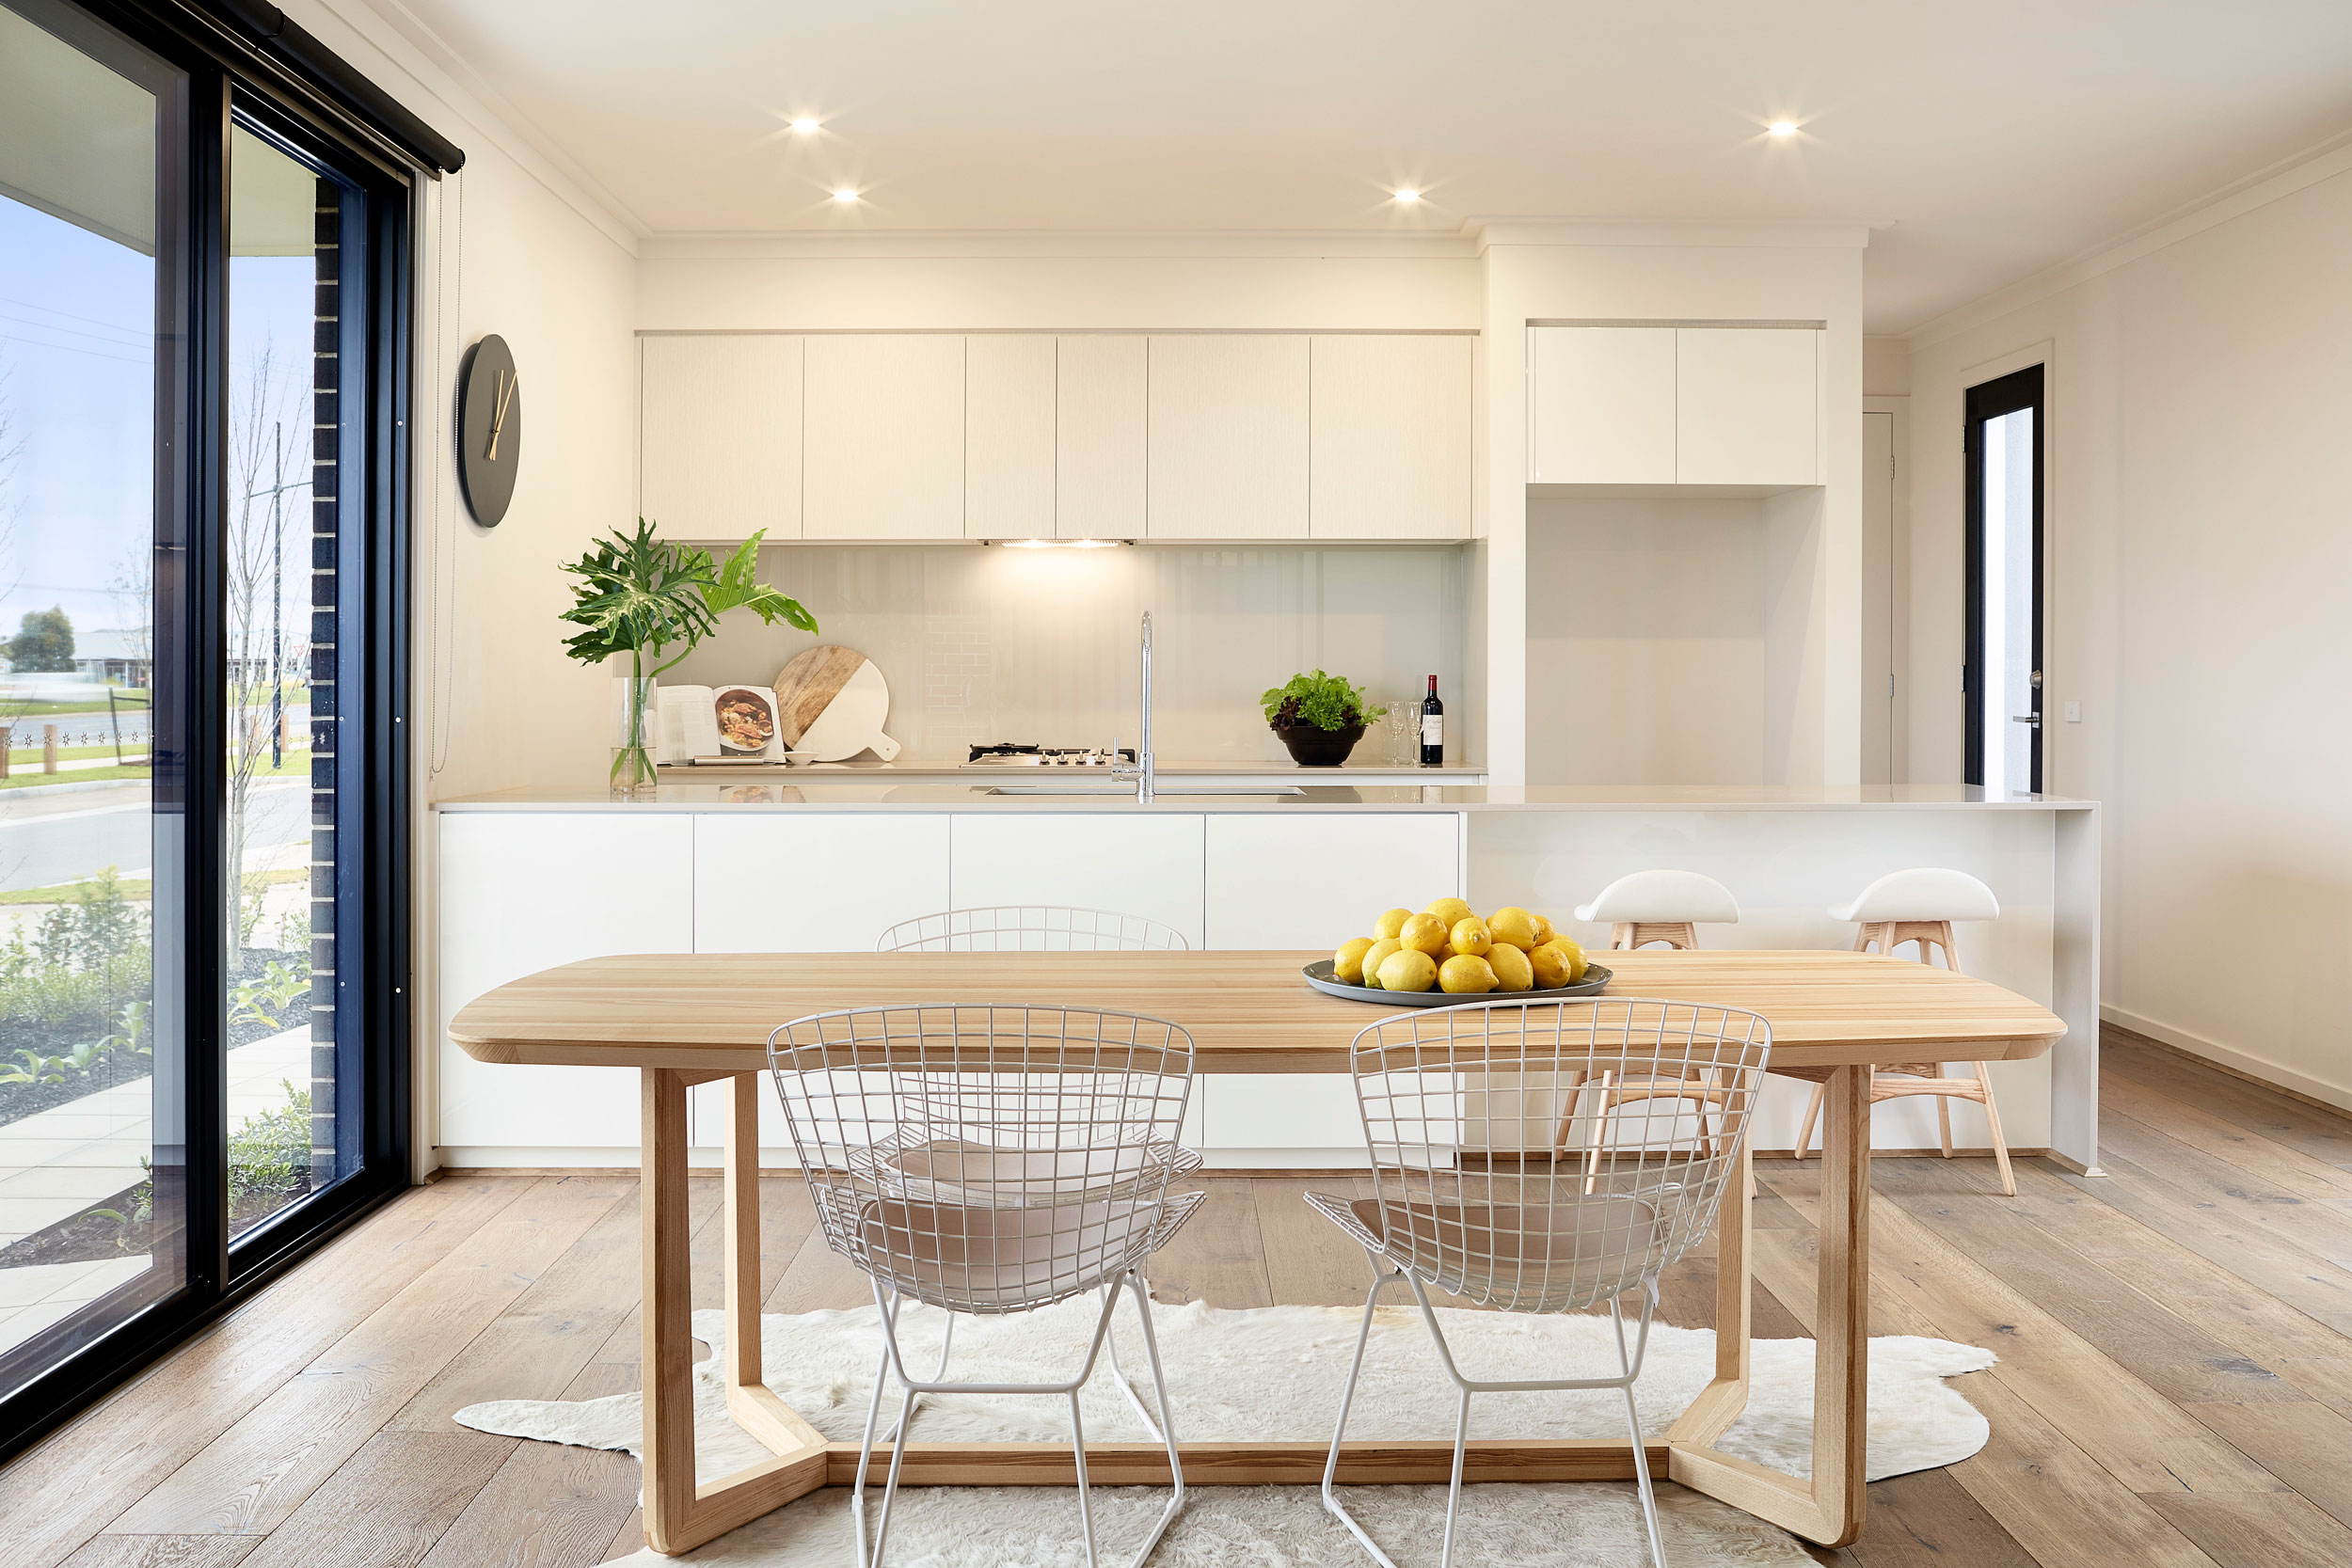 Sarah_Anderson_Photography_Property_Interiors_Dining_Room